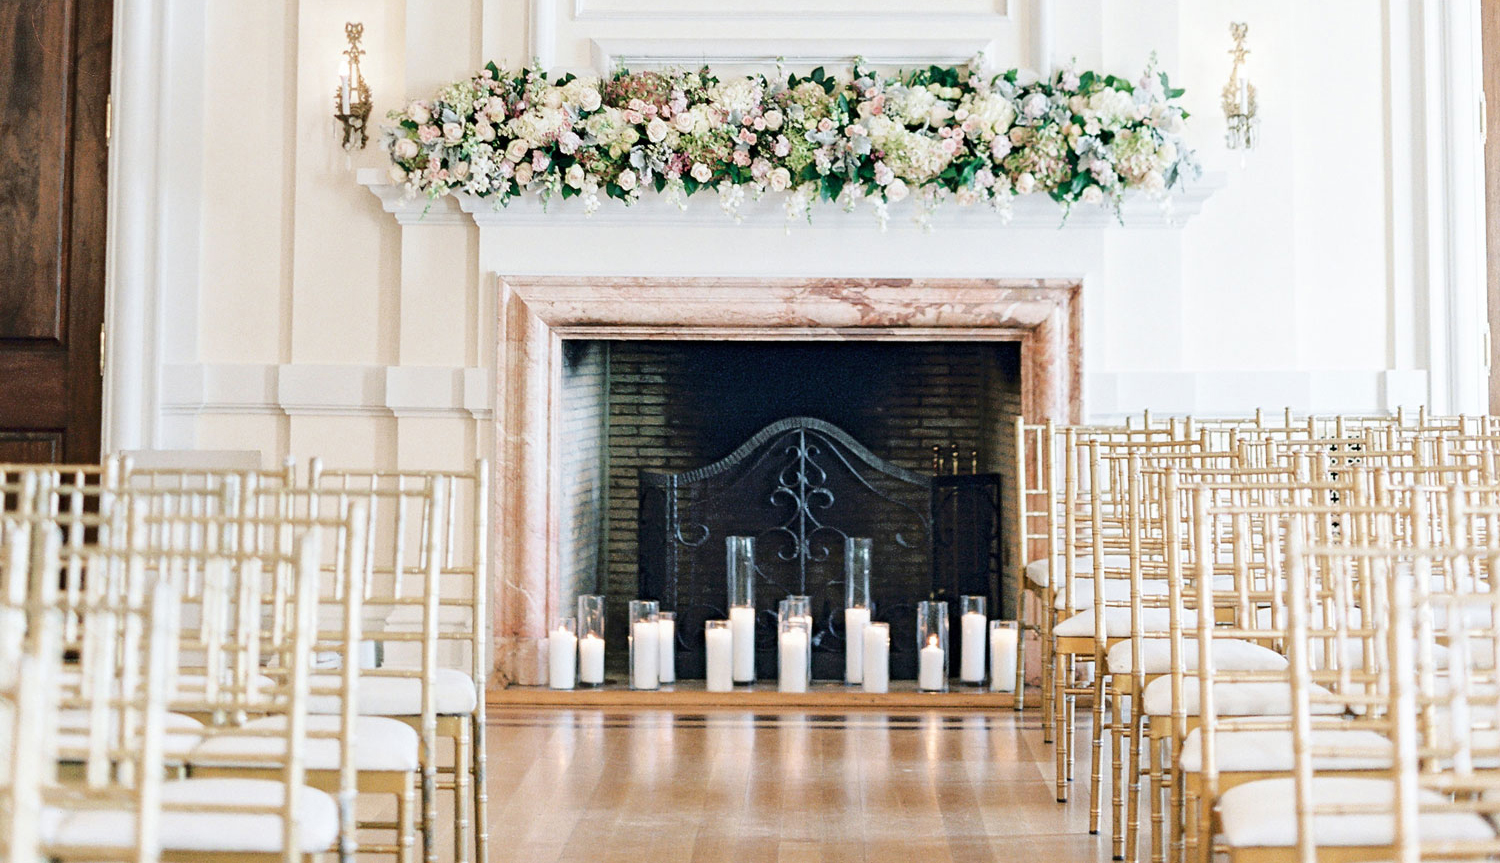 indoor wedding set up in front of fireplace with candles, gold chiavari chairs setup for pop-up wedding